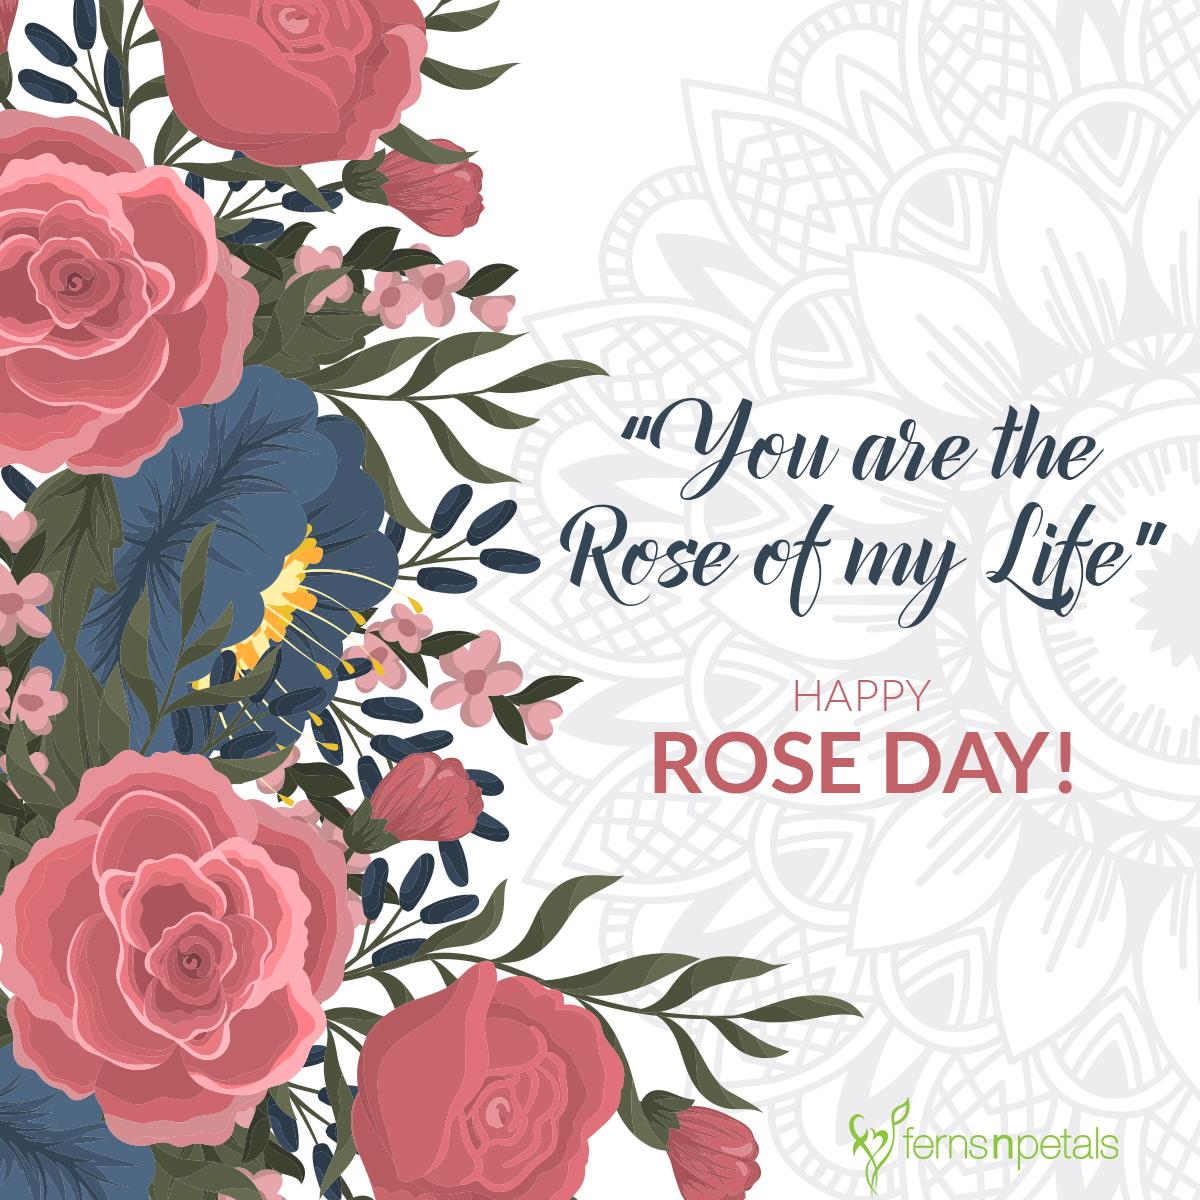 wishing rose day wishes for her